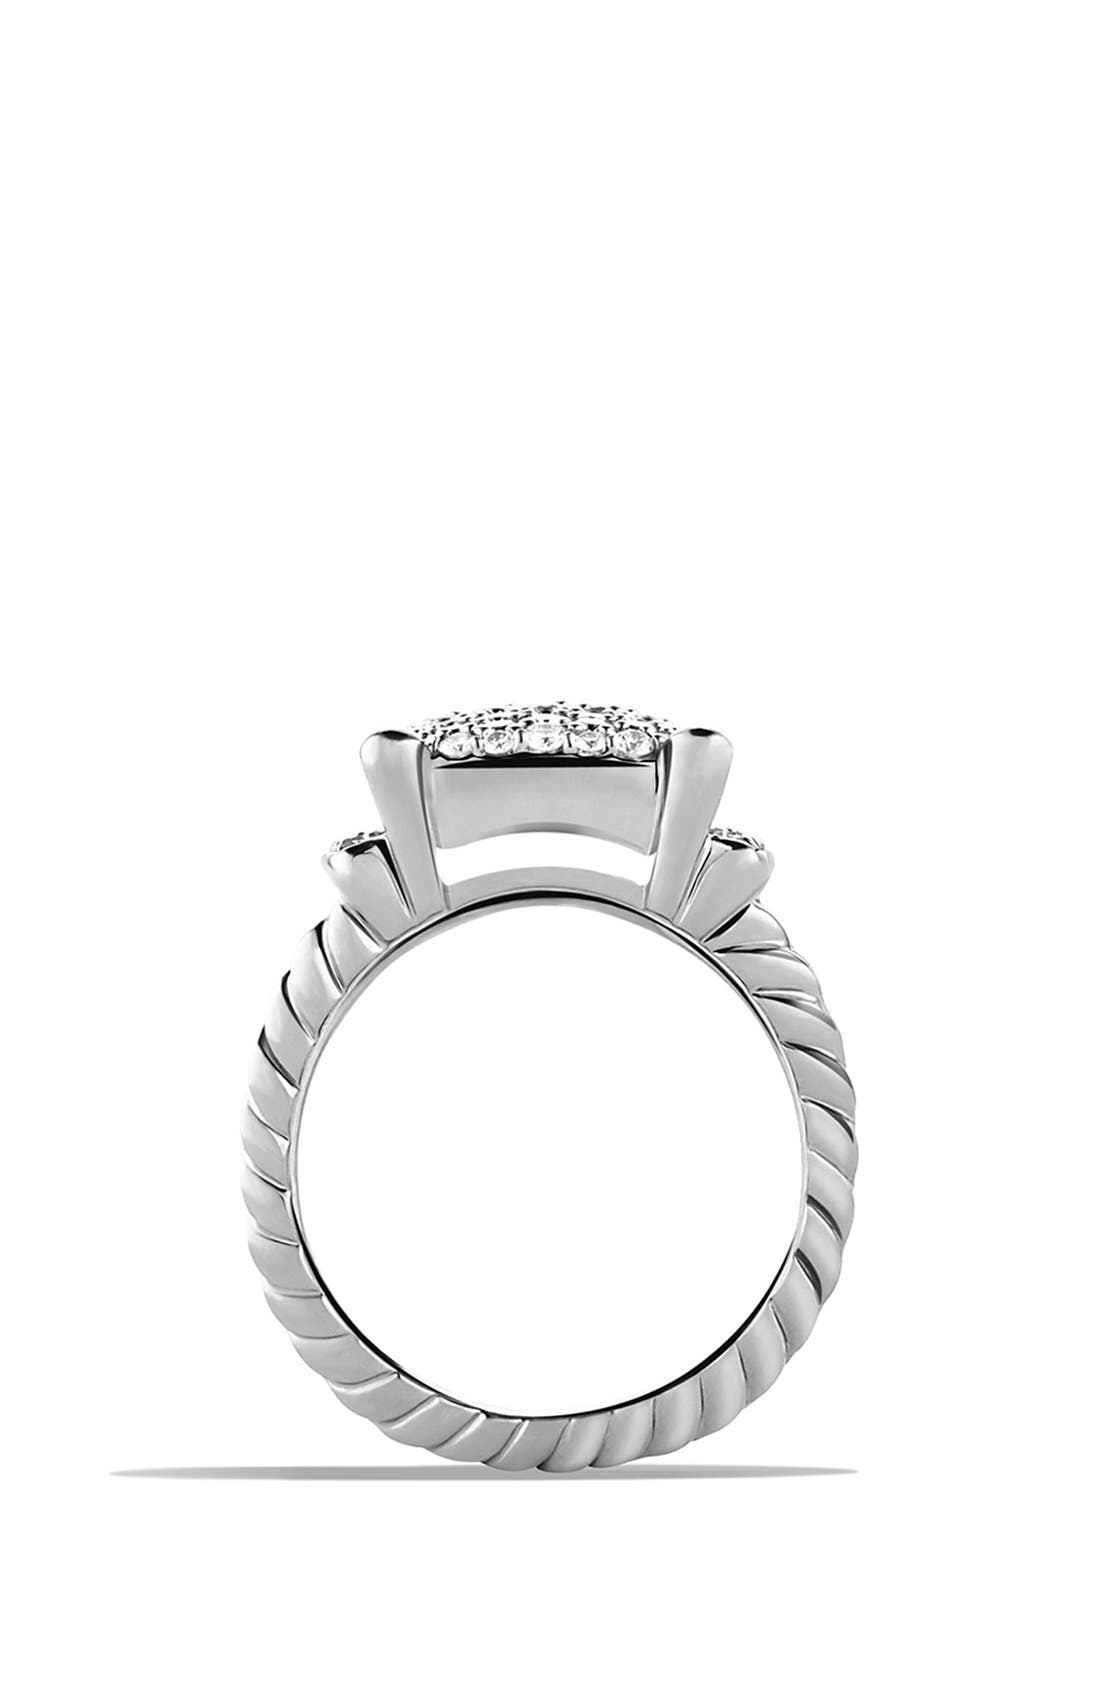 DAVID YURMAN,                             'Wheaton' Ring with Diamonds,                             Alternate thumbnail 3, color,                             DIAMOND